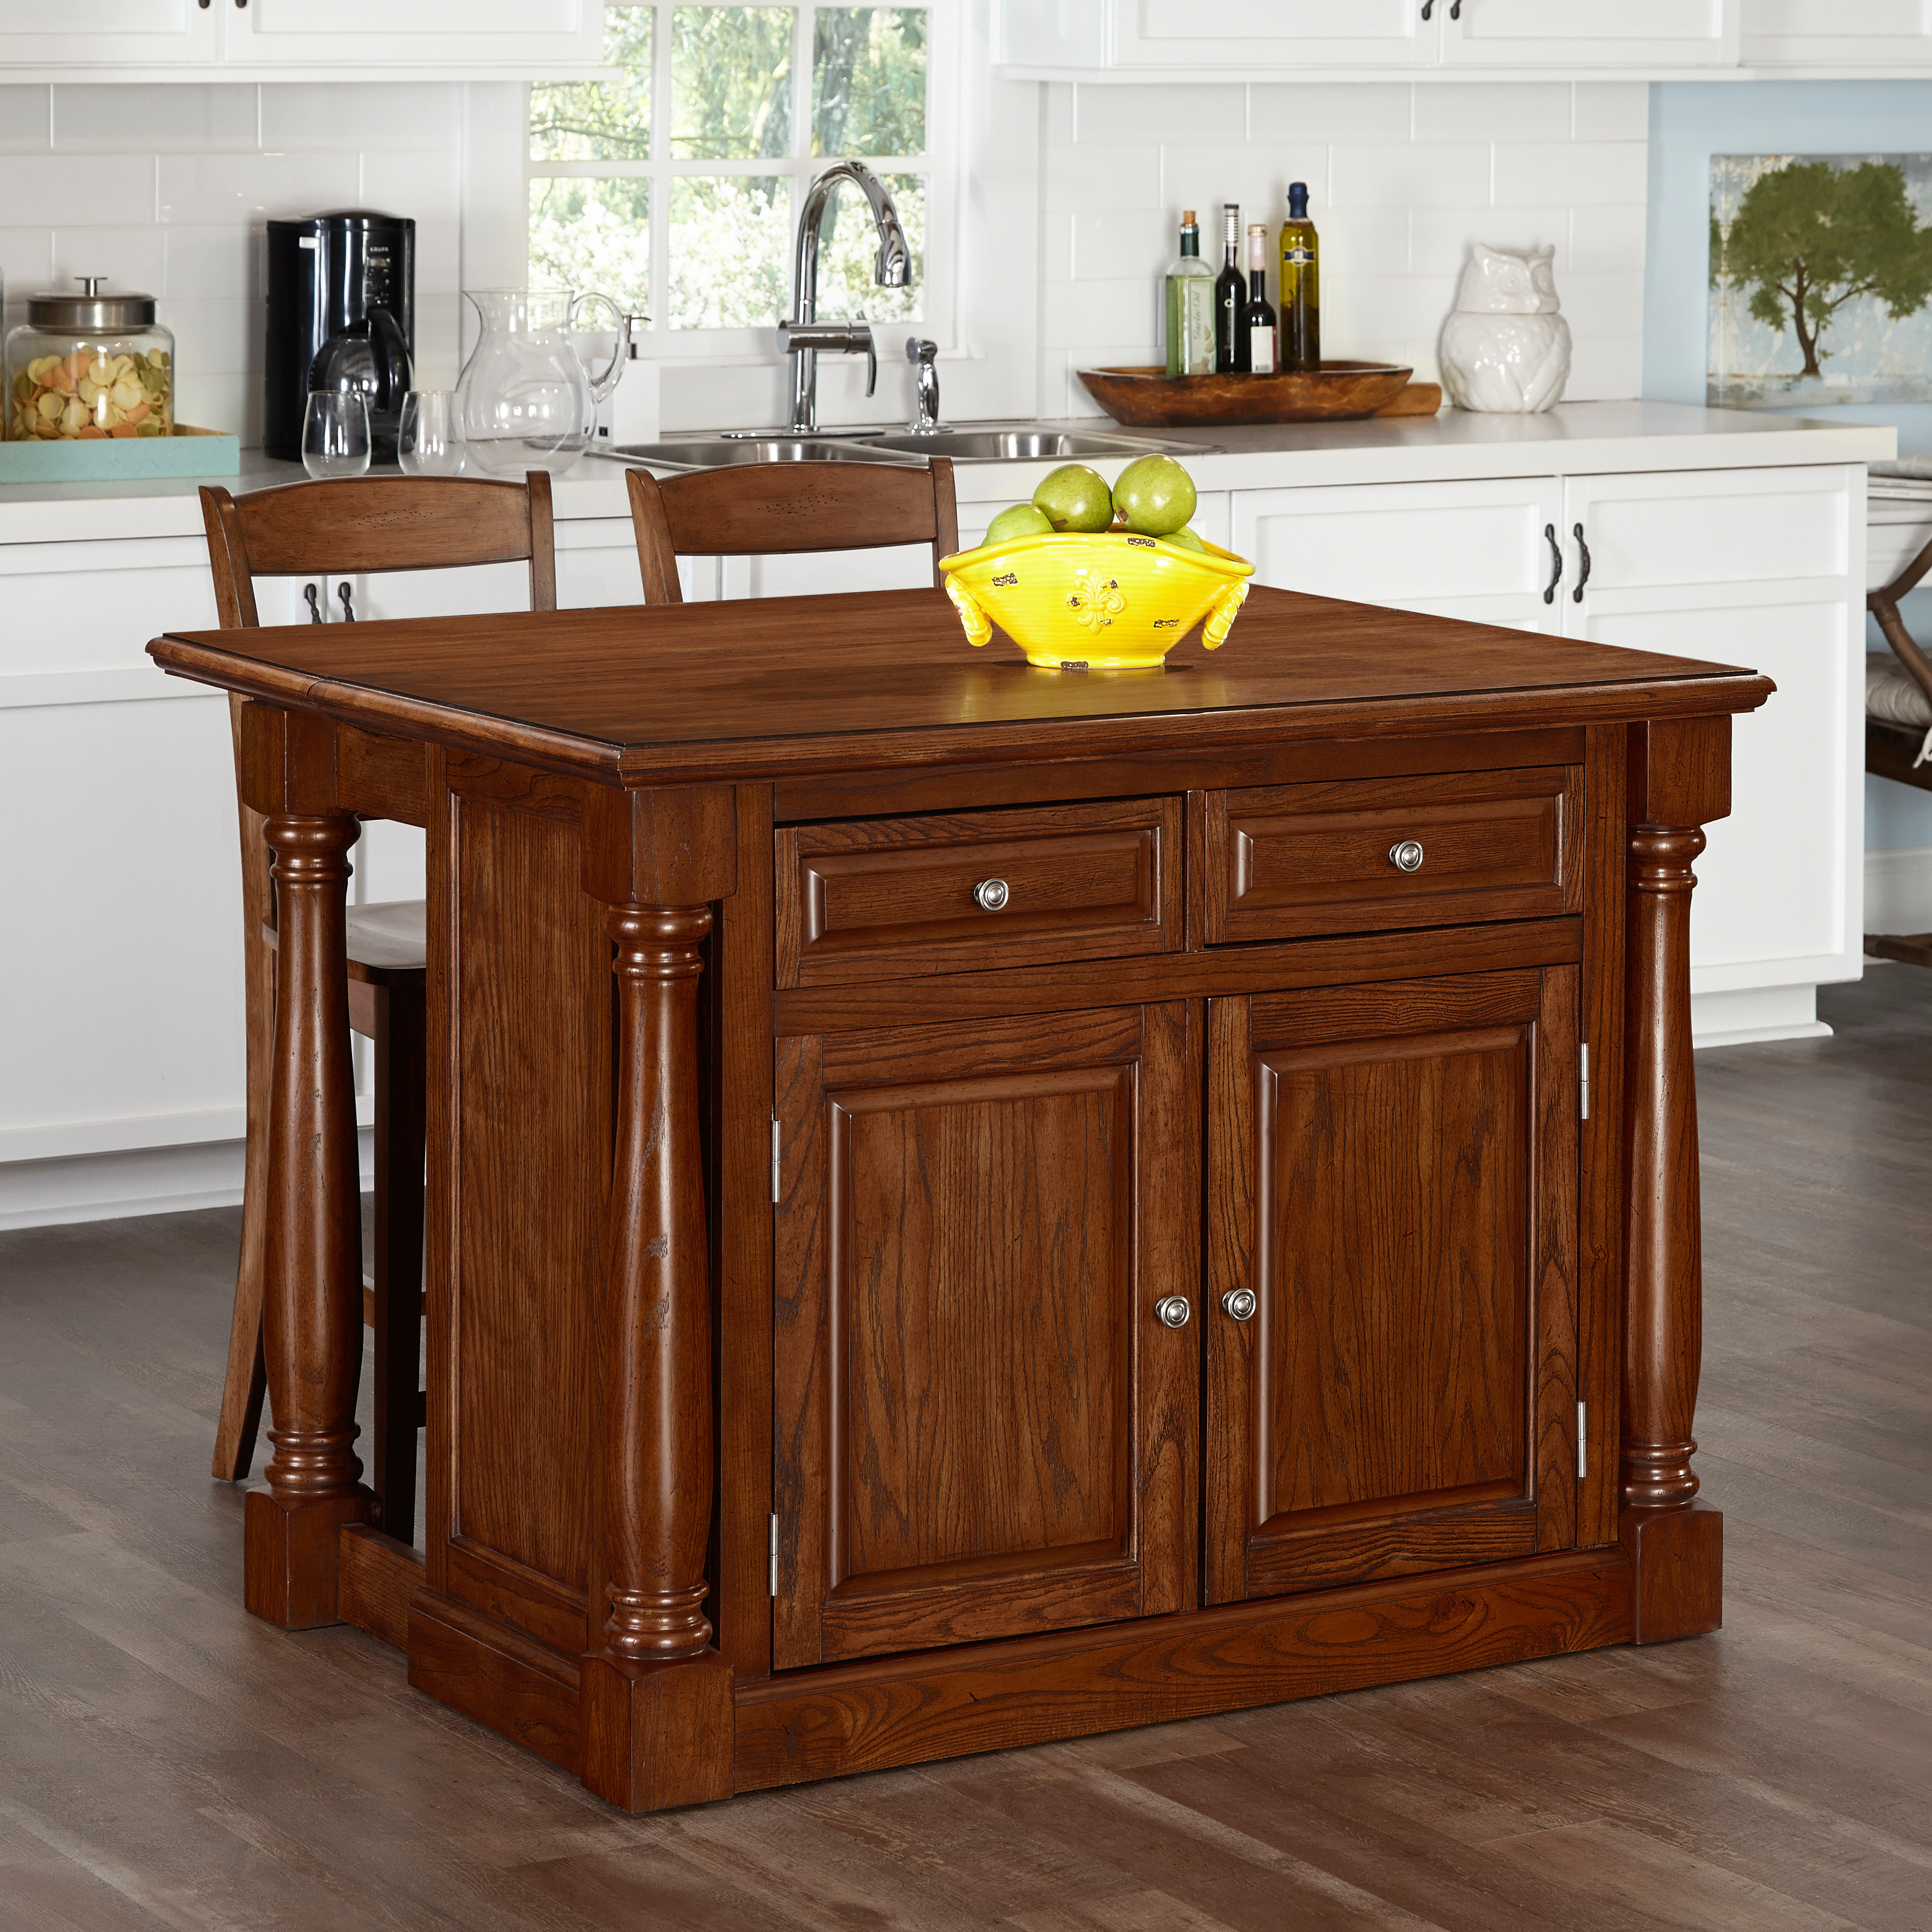 monarch kitchen island home styles monarch kitchen island with optional stools 14290